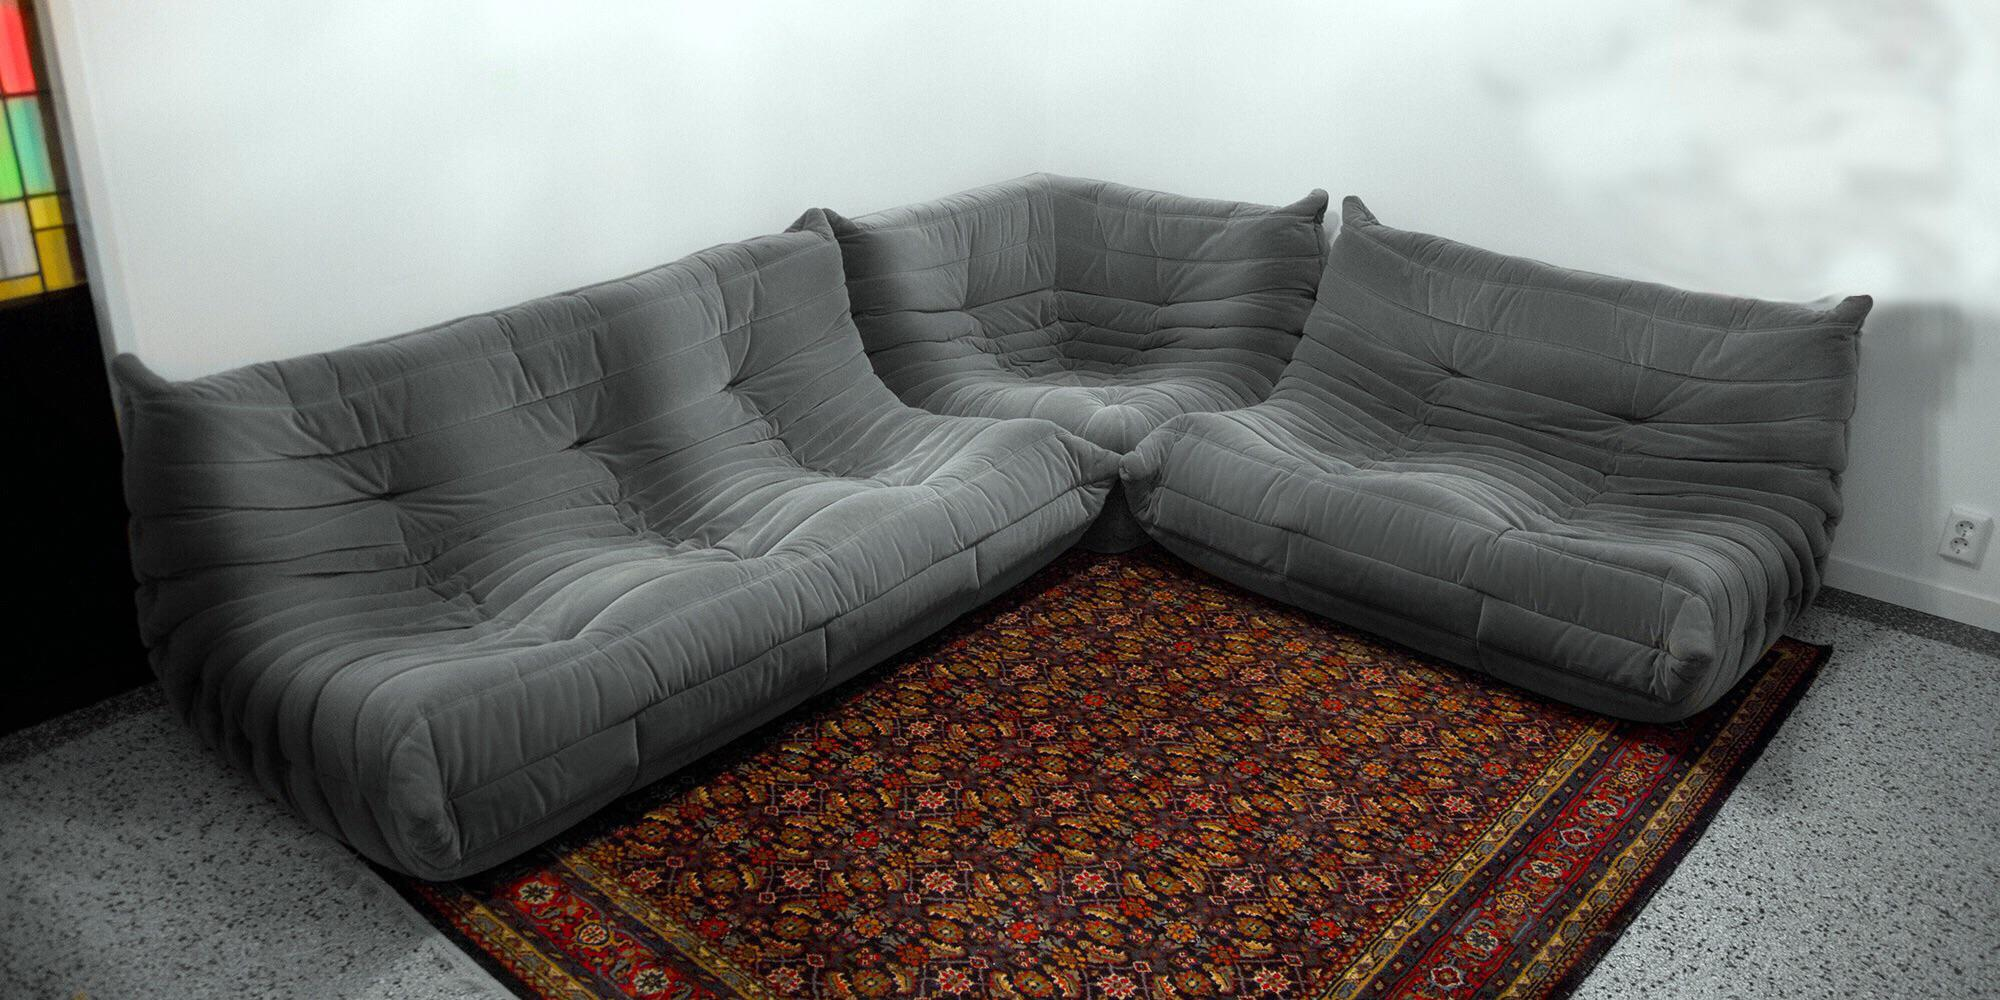 Gorgeous Togo Sectional Set , 1 3 Seater Sofa, 1 Seater Love Seat,. Michel  Ducaroy For Ligne Roset ...